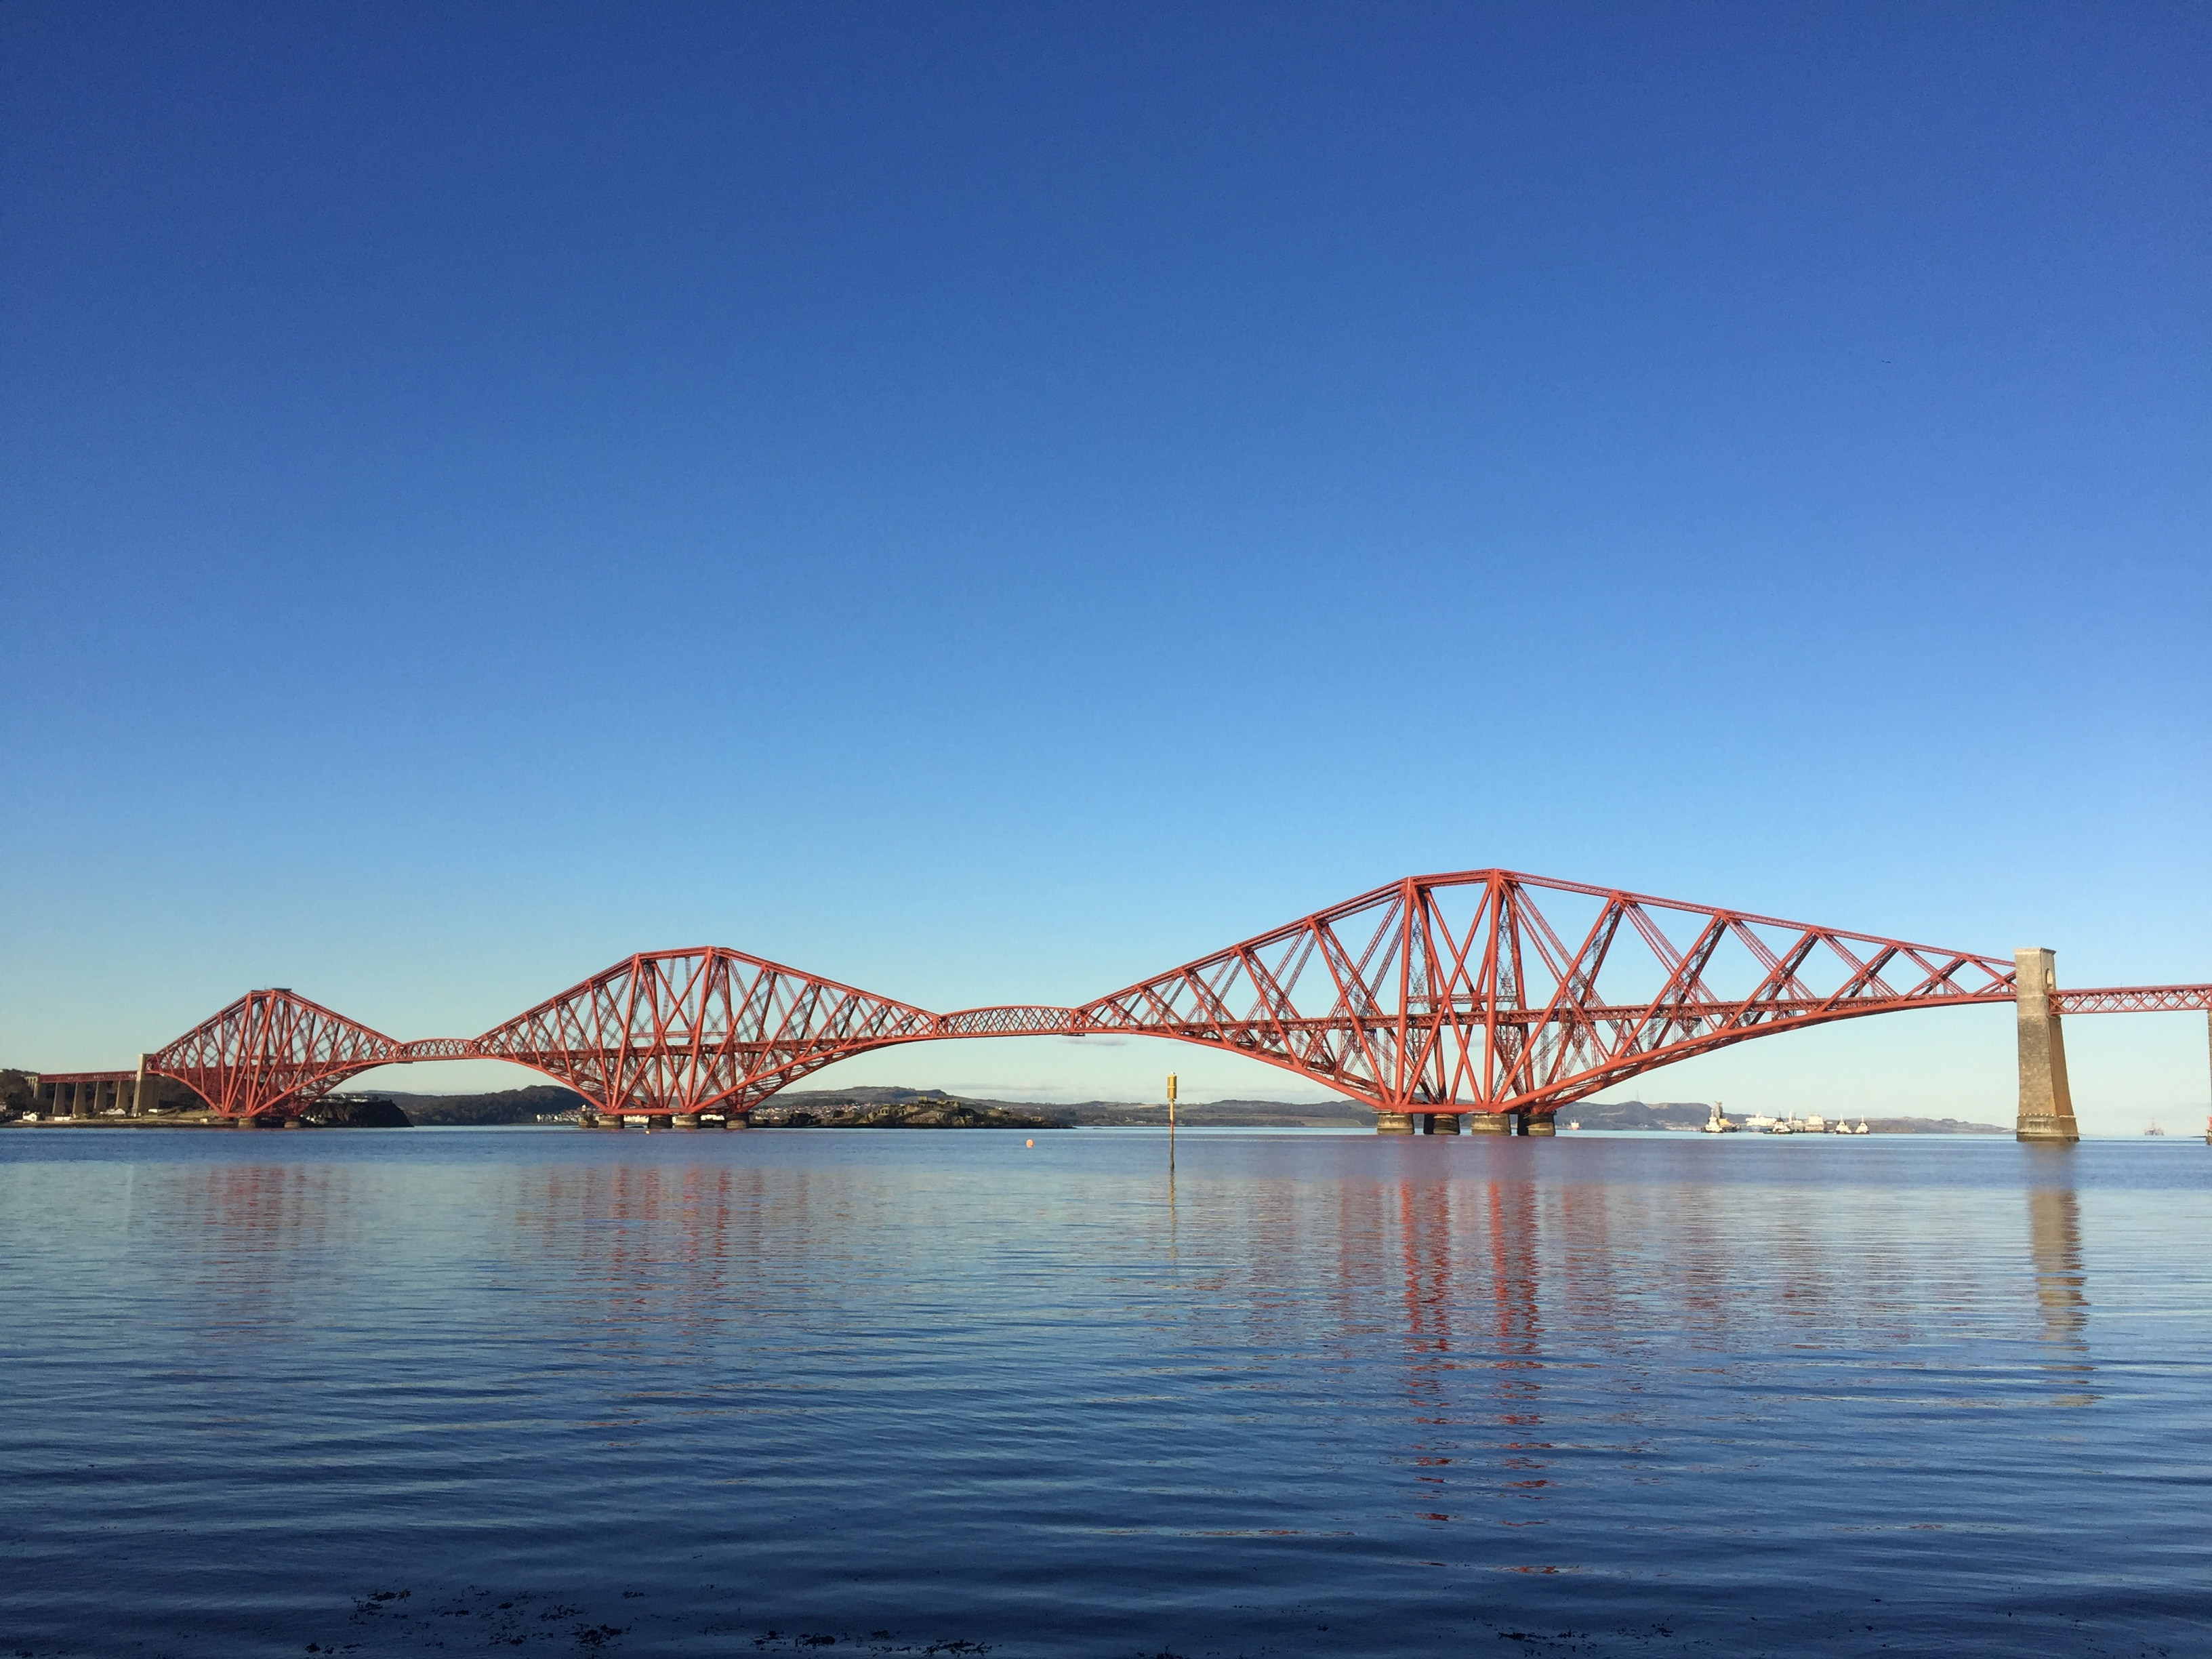 My Travel Blogs for @Scotrail